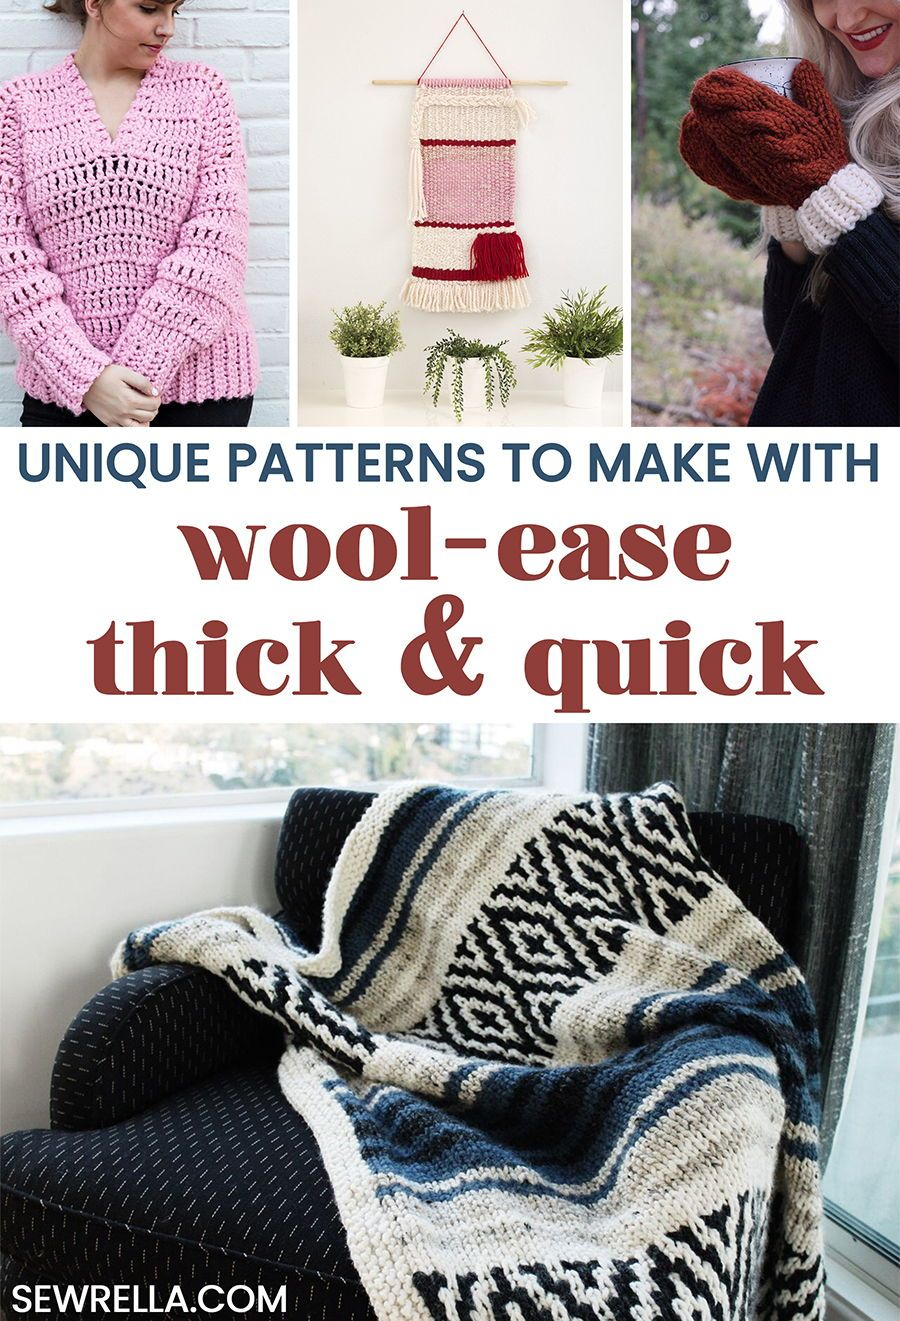 A Variety of WoolEase Thick u Quick Crochet and Knit Patterns